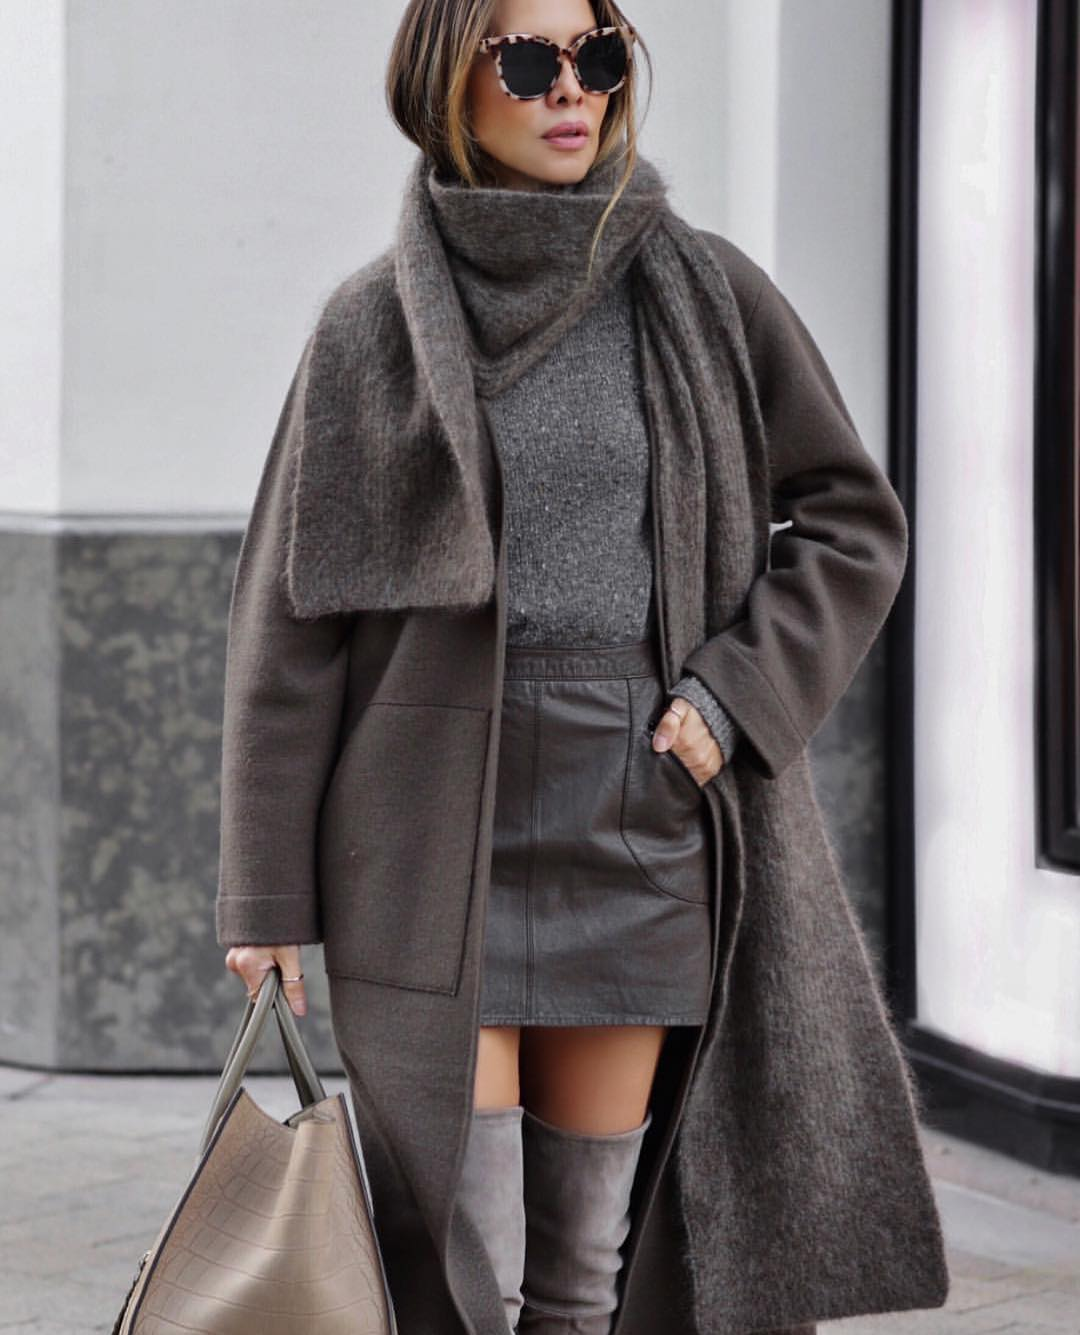 All Grey Layered Outfit Idea: Oversized Coat With Sweater And Leather Mini Skirt 2021